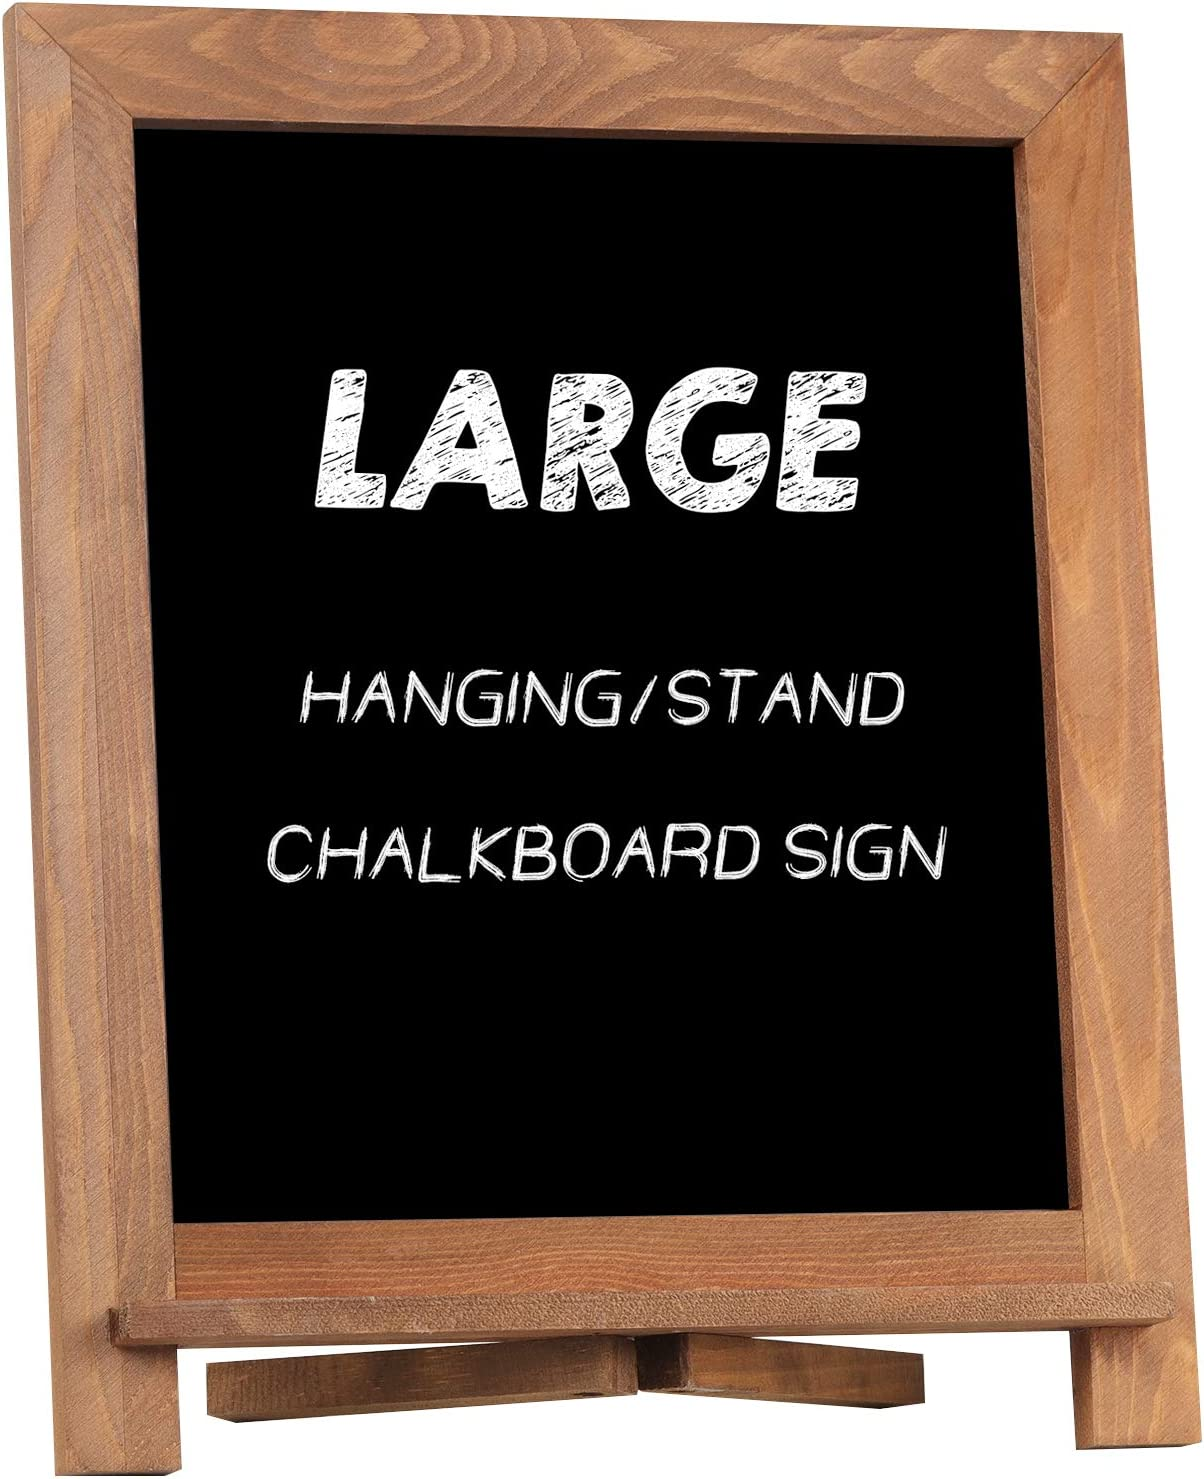 Amazon Com Rustic Chalkboard Sign Nearpow 15 X12 Tabletop Stand And Wall Hanging Display Solid Pine Wood Frame With Smooth Magnetic Surface Chalk Board Easel For Home Decoration Wedding Kitchen Menu Brown Home Kitchen